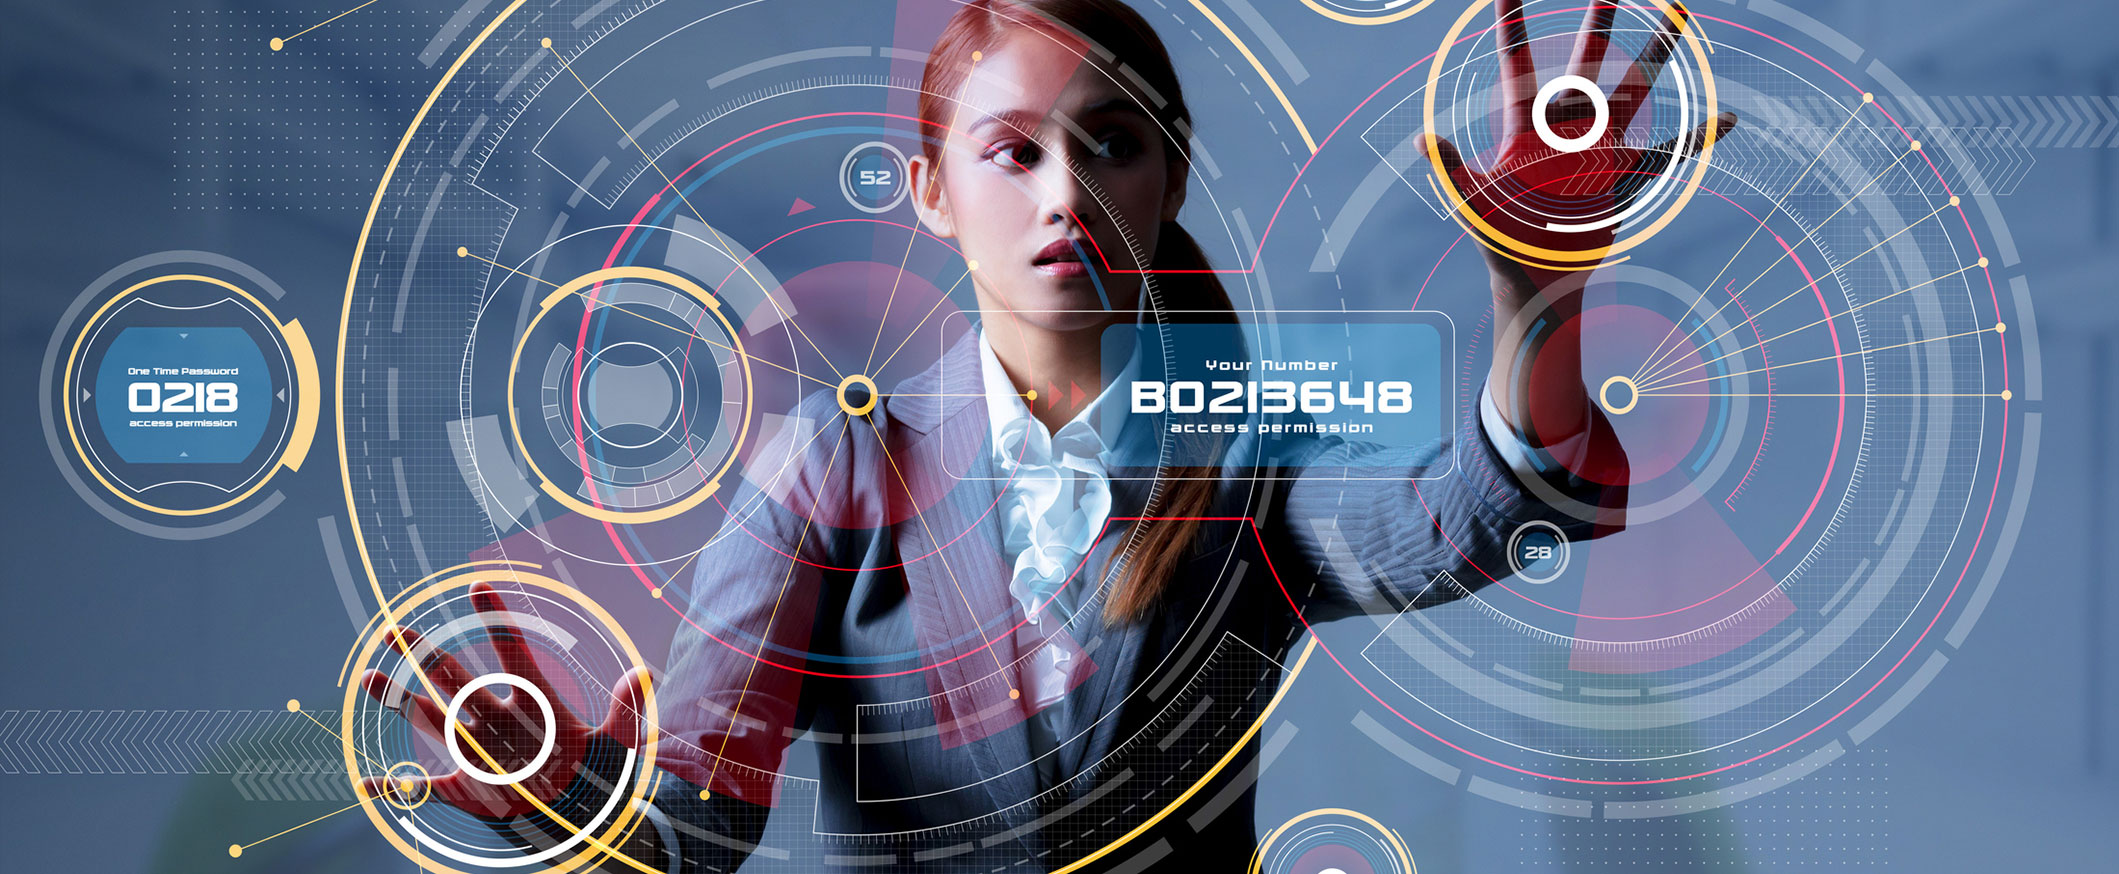 Young Lady Using Graphics User Interface